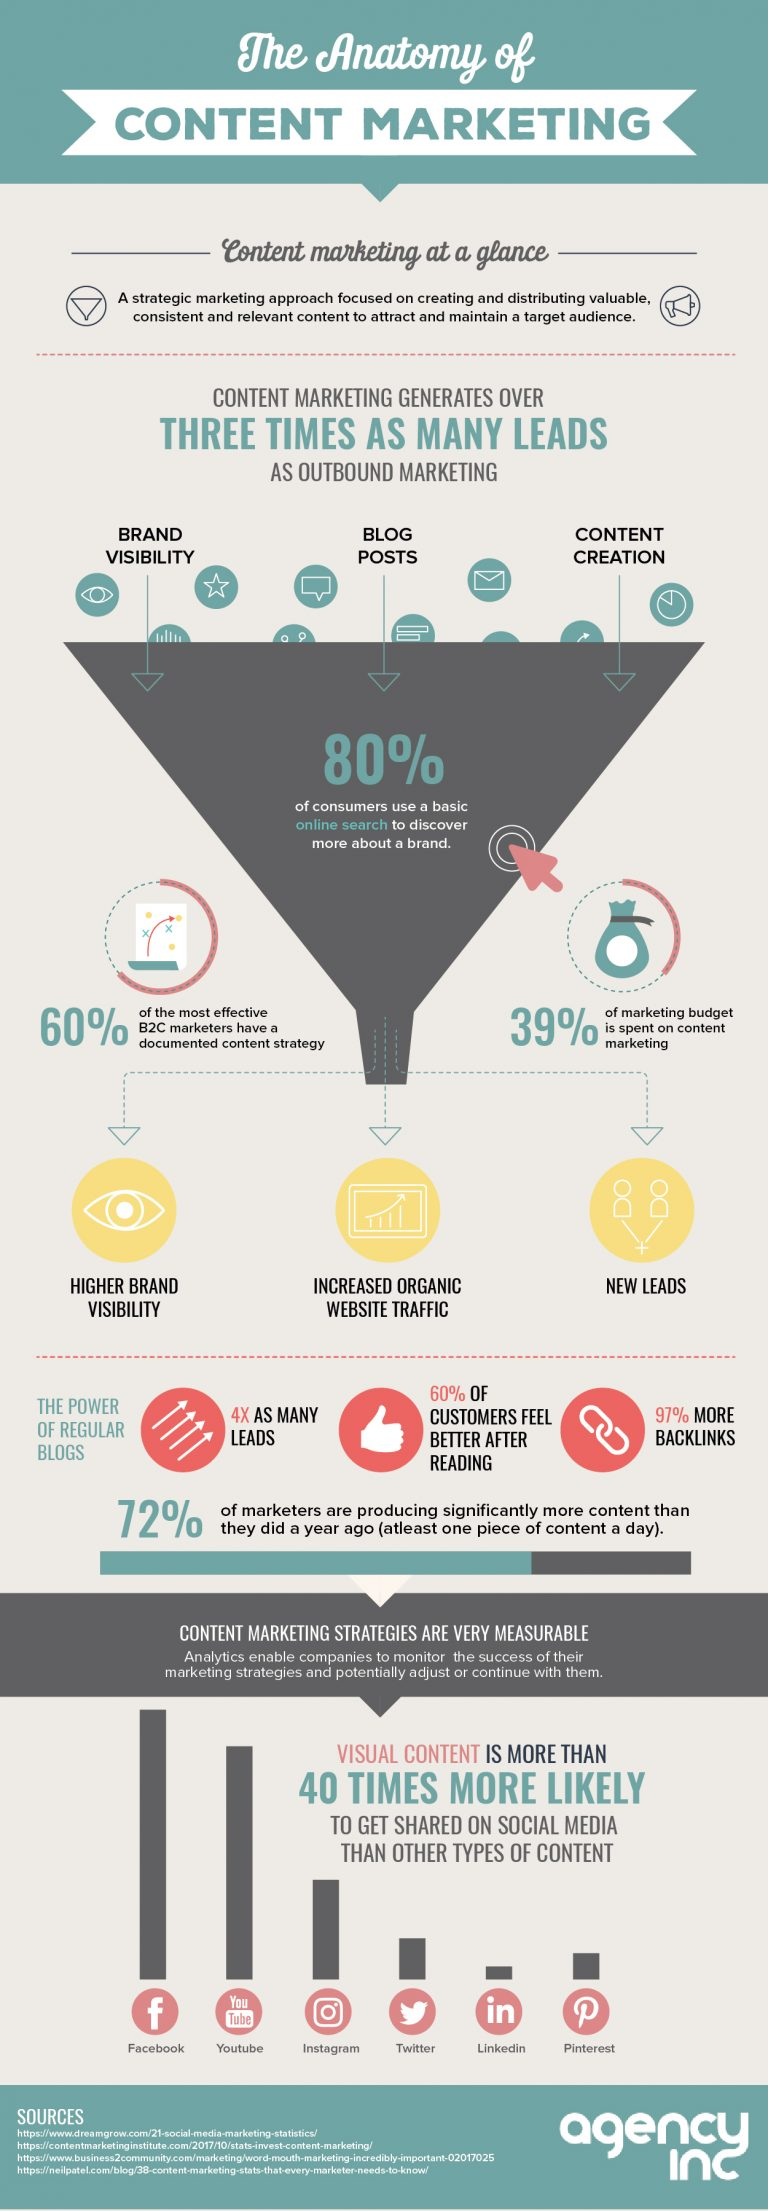 Content-marketing-infographic-plaza